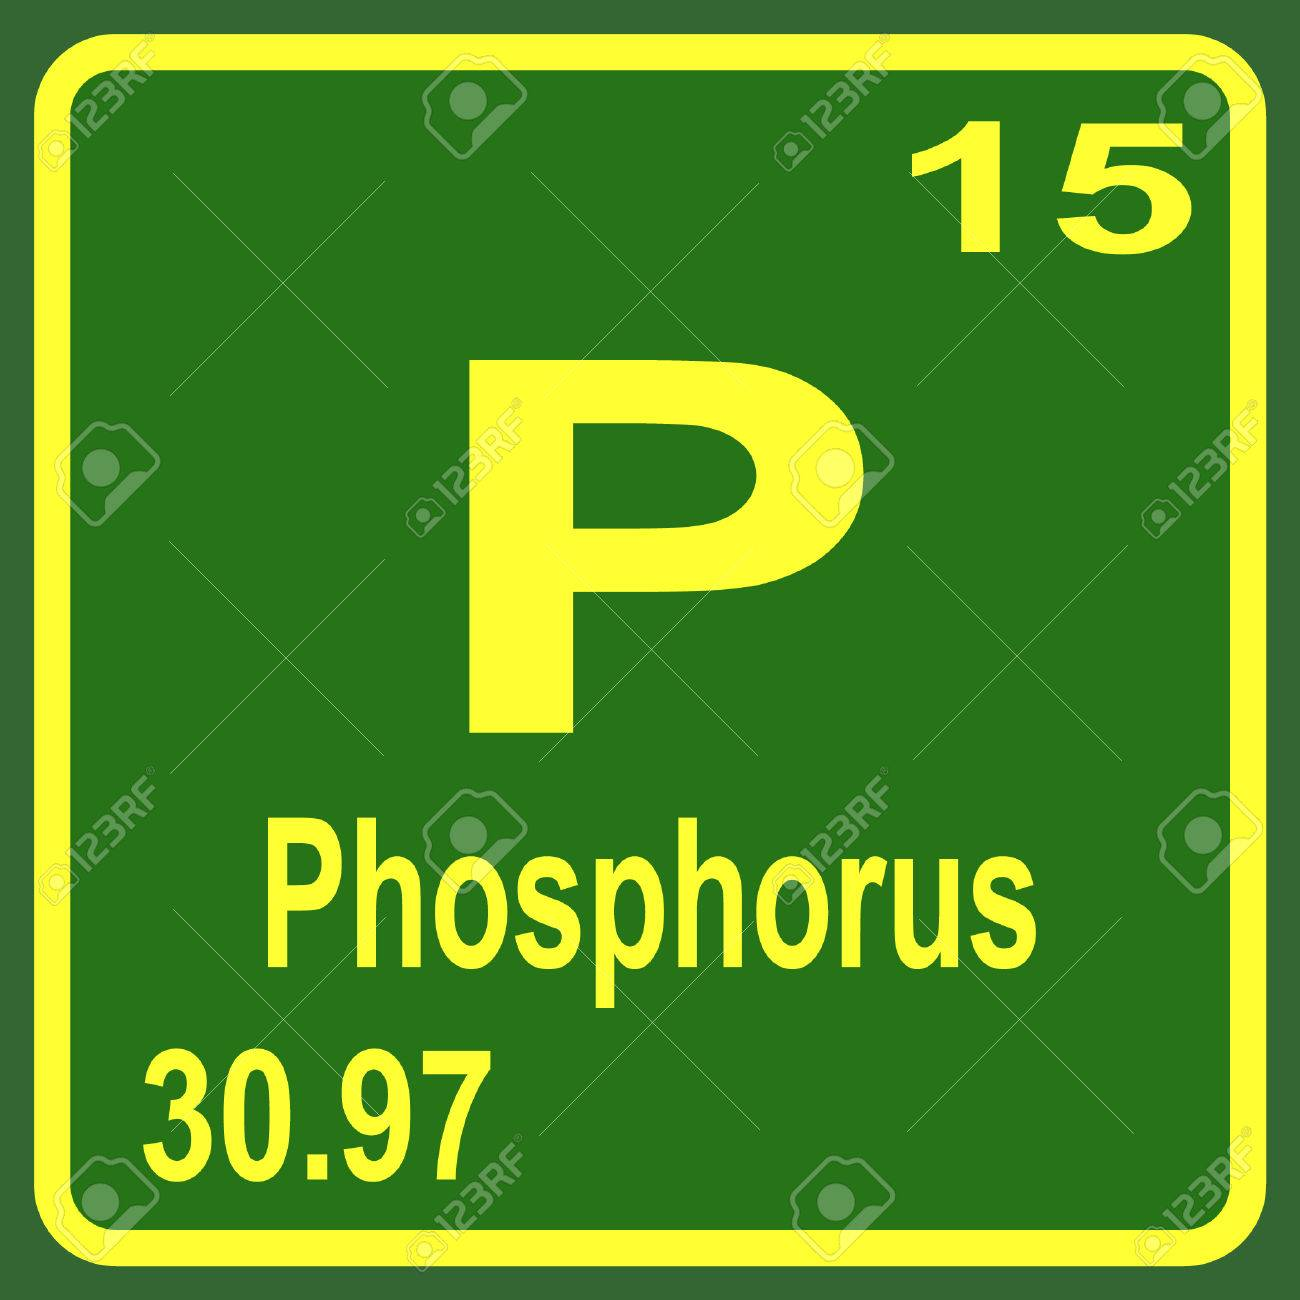 Periodic table of elements phosphorus royalty free cliparts periodic table of elements phosphorus stock vector 53900403 urtaz Image collections